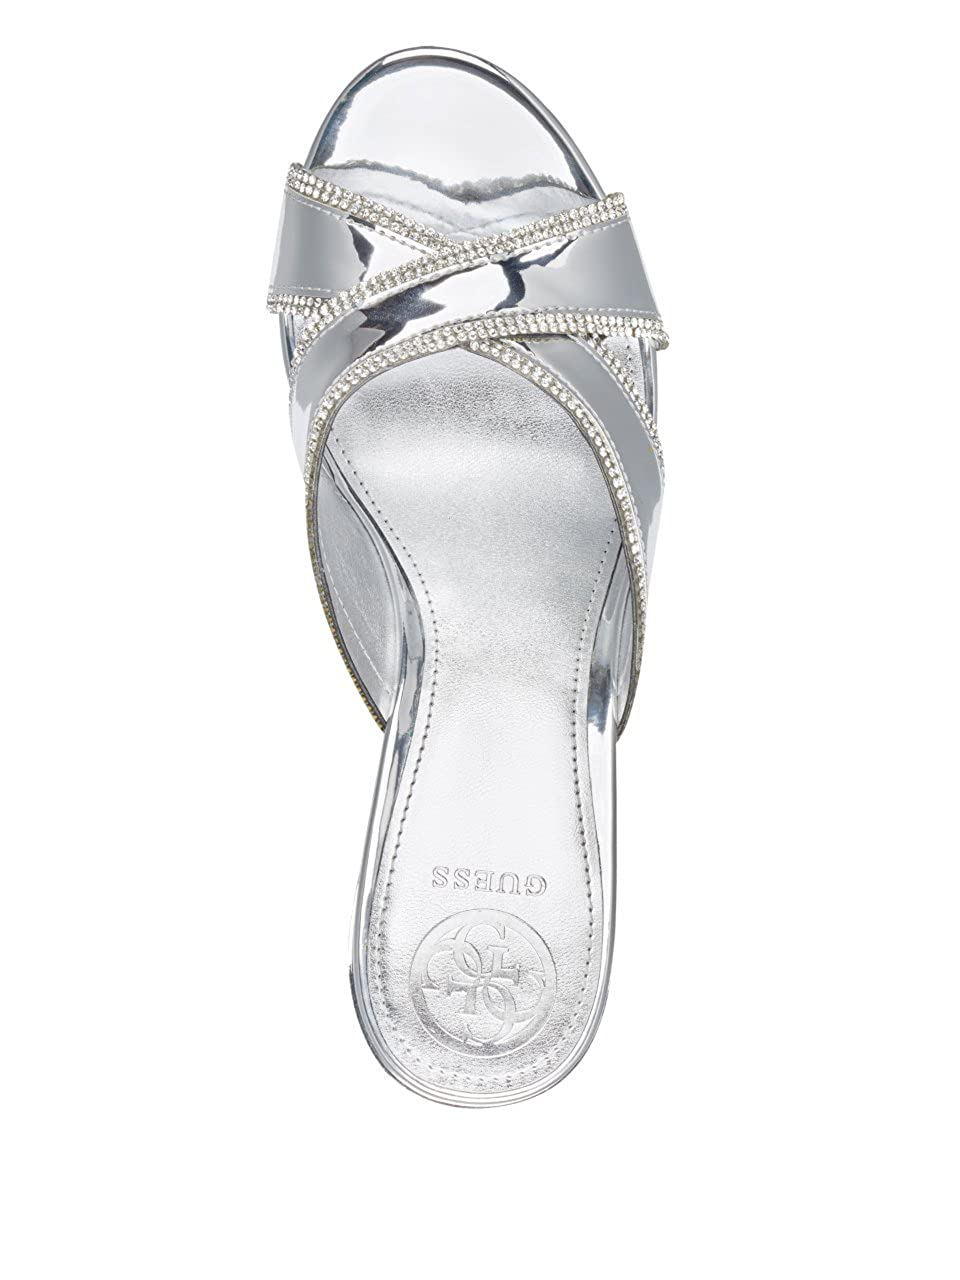 GUESS Womens ELEONORA4 Wedge Sandal